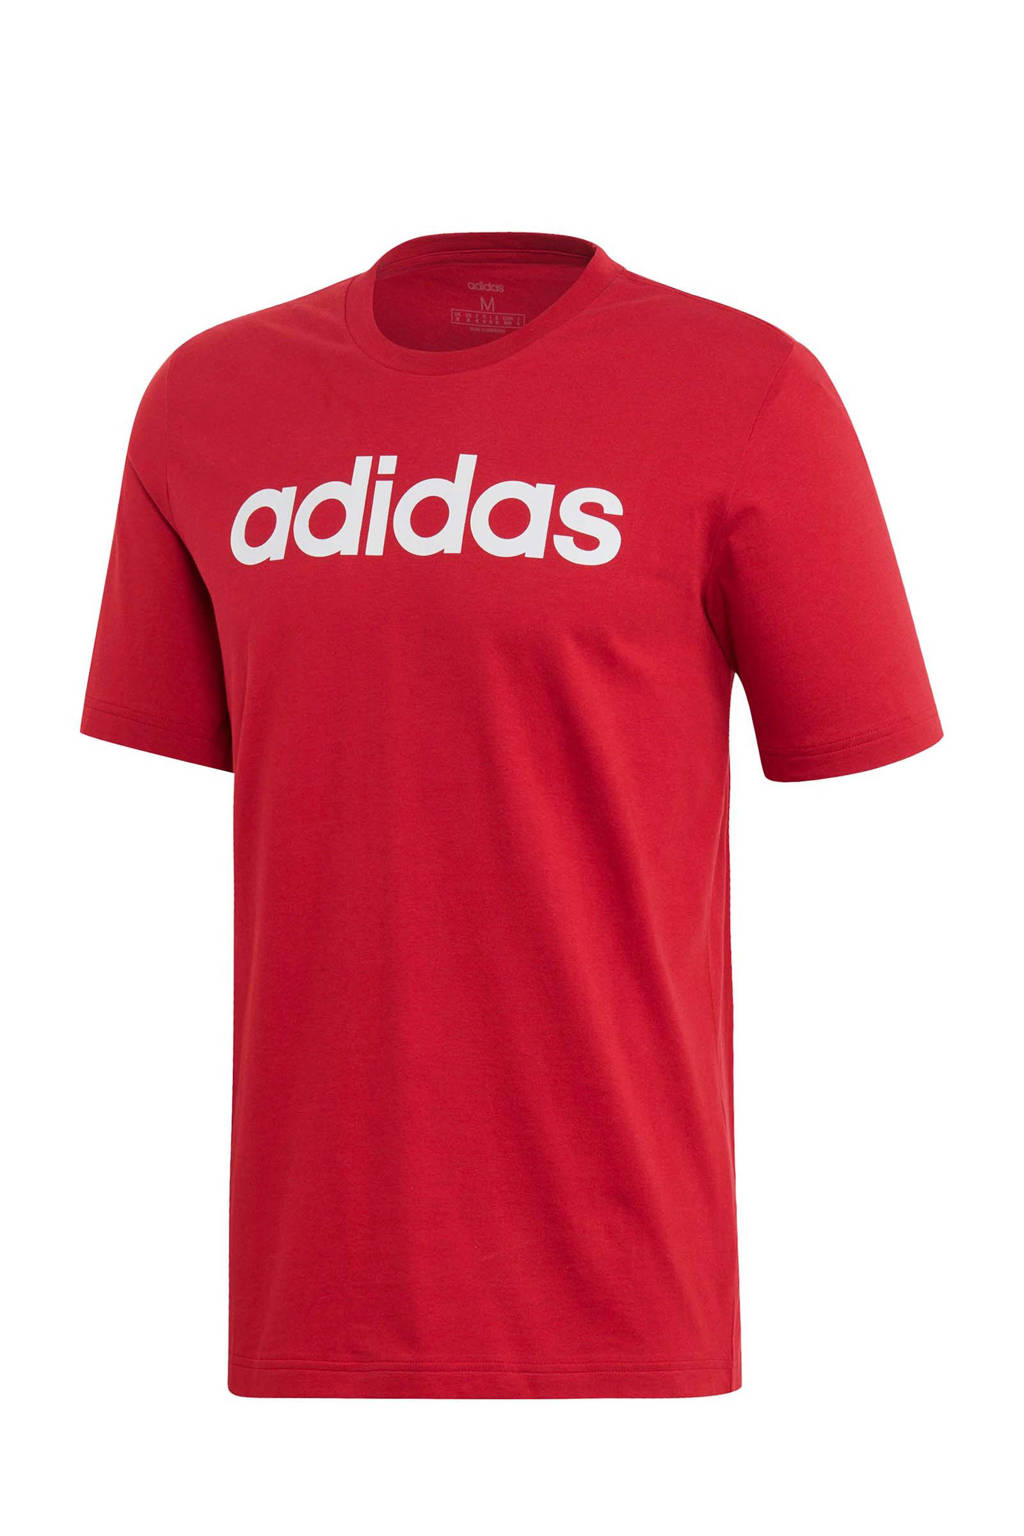 adidas Performance   sport T-shirt rood, Rood/wit